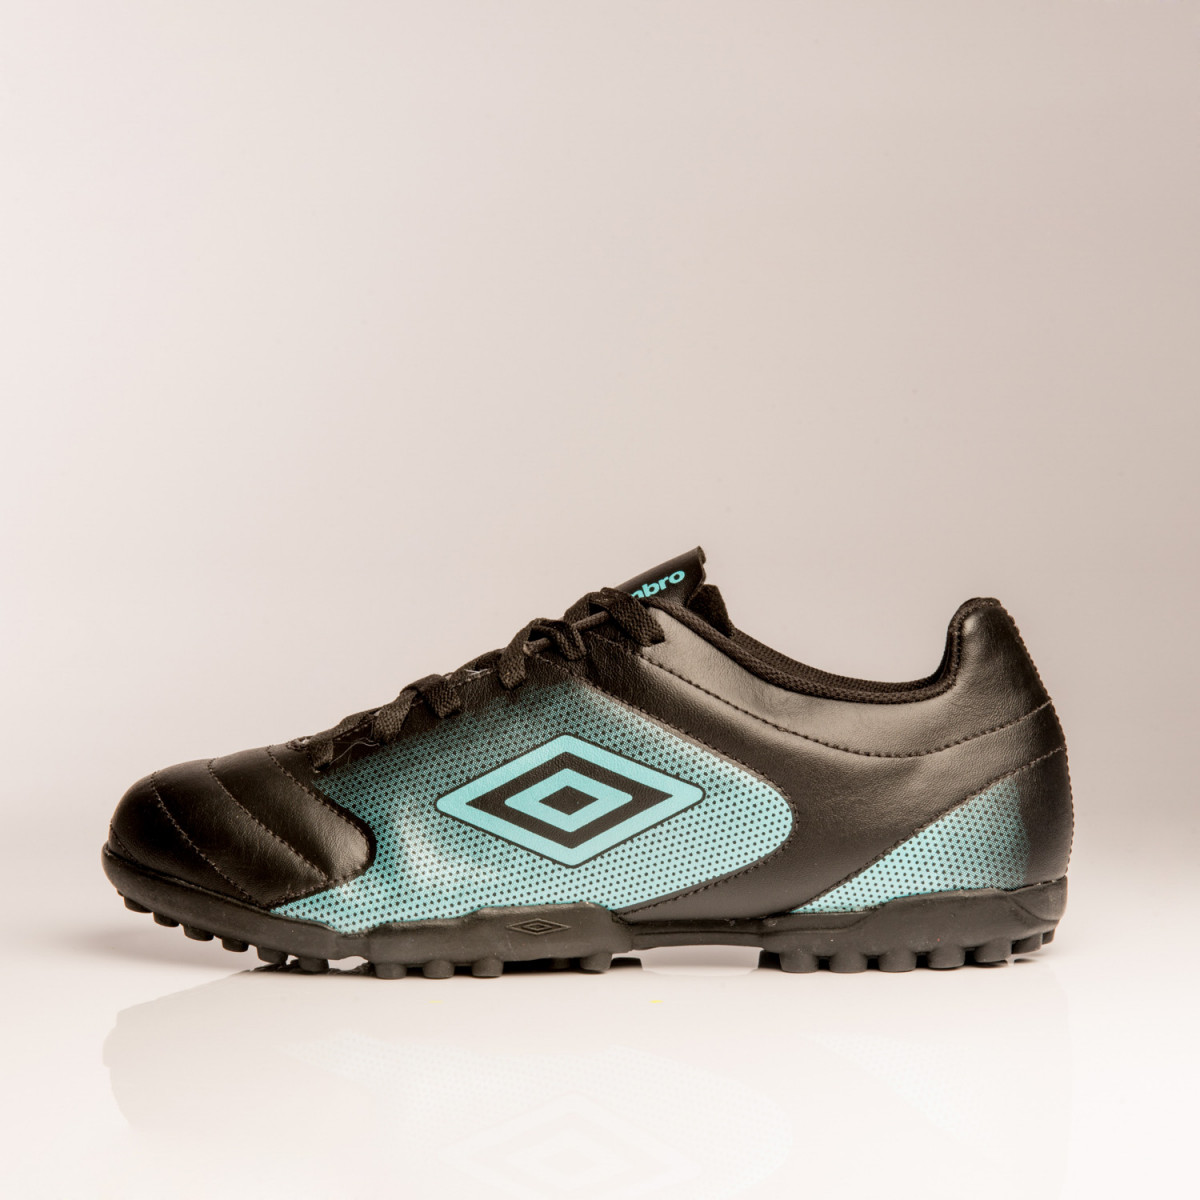 BOTINES UMBRO  CHUTERIA SOCIETY STRIKER